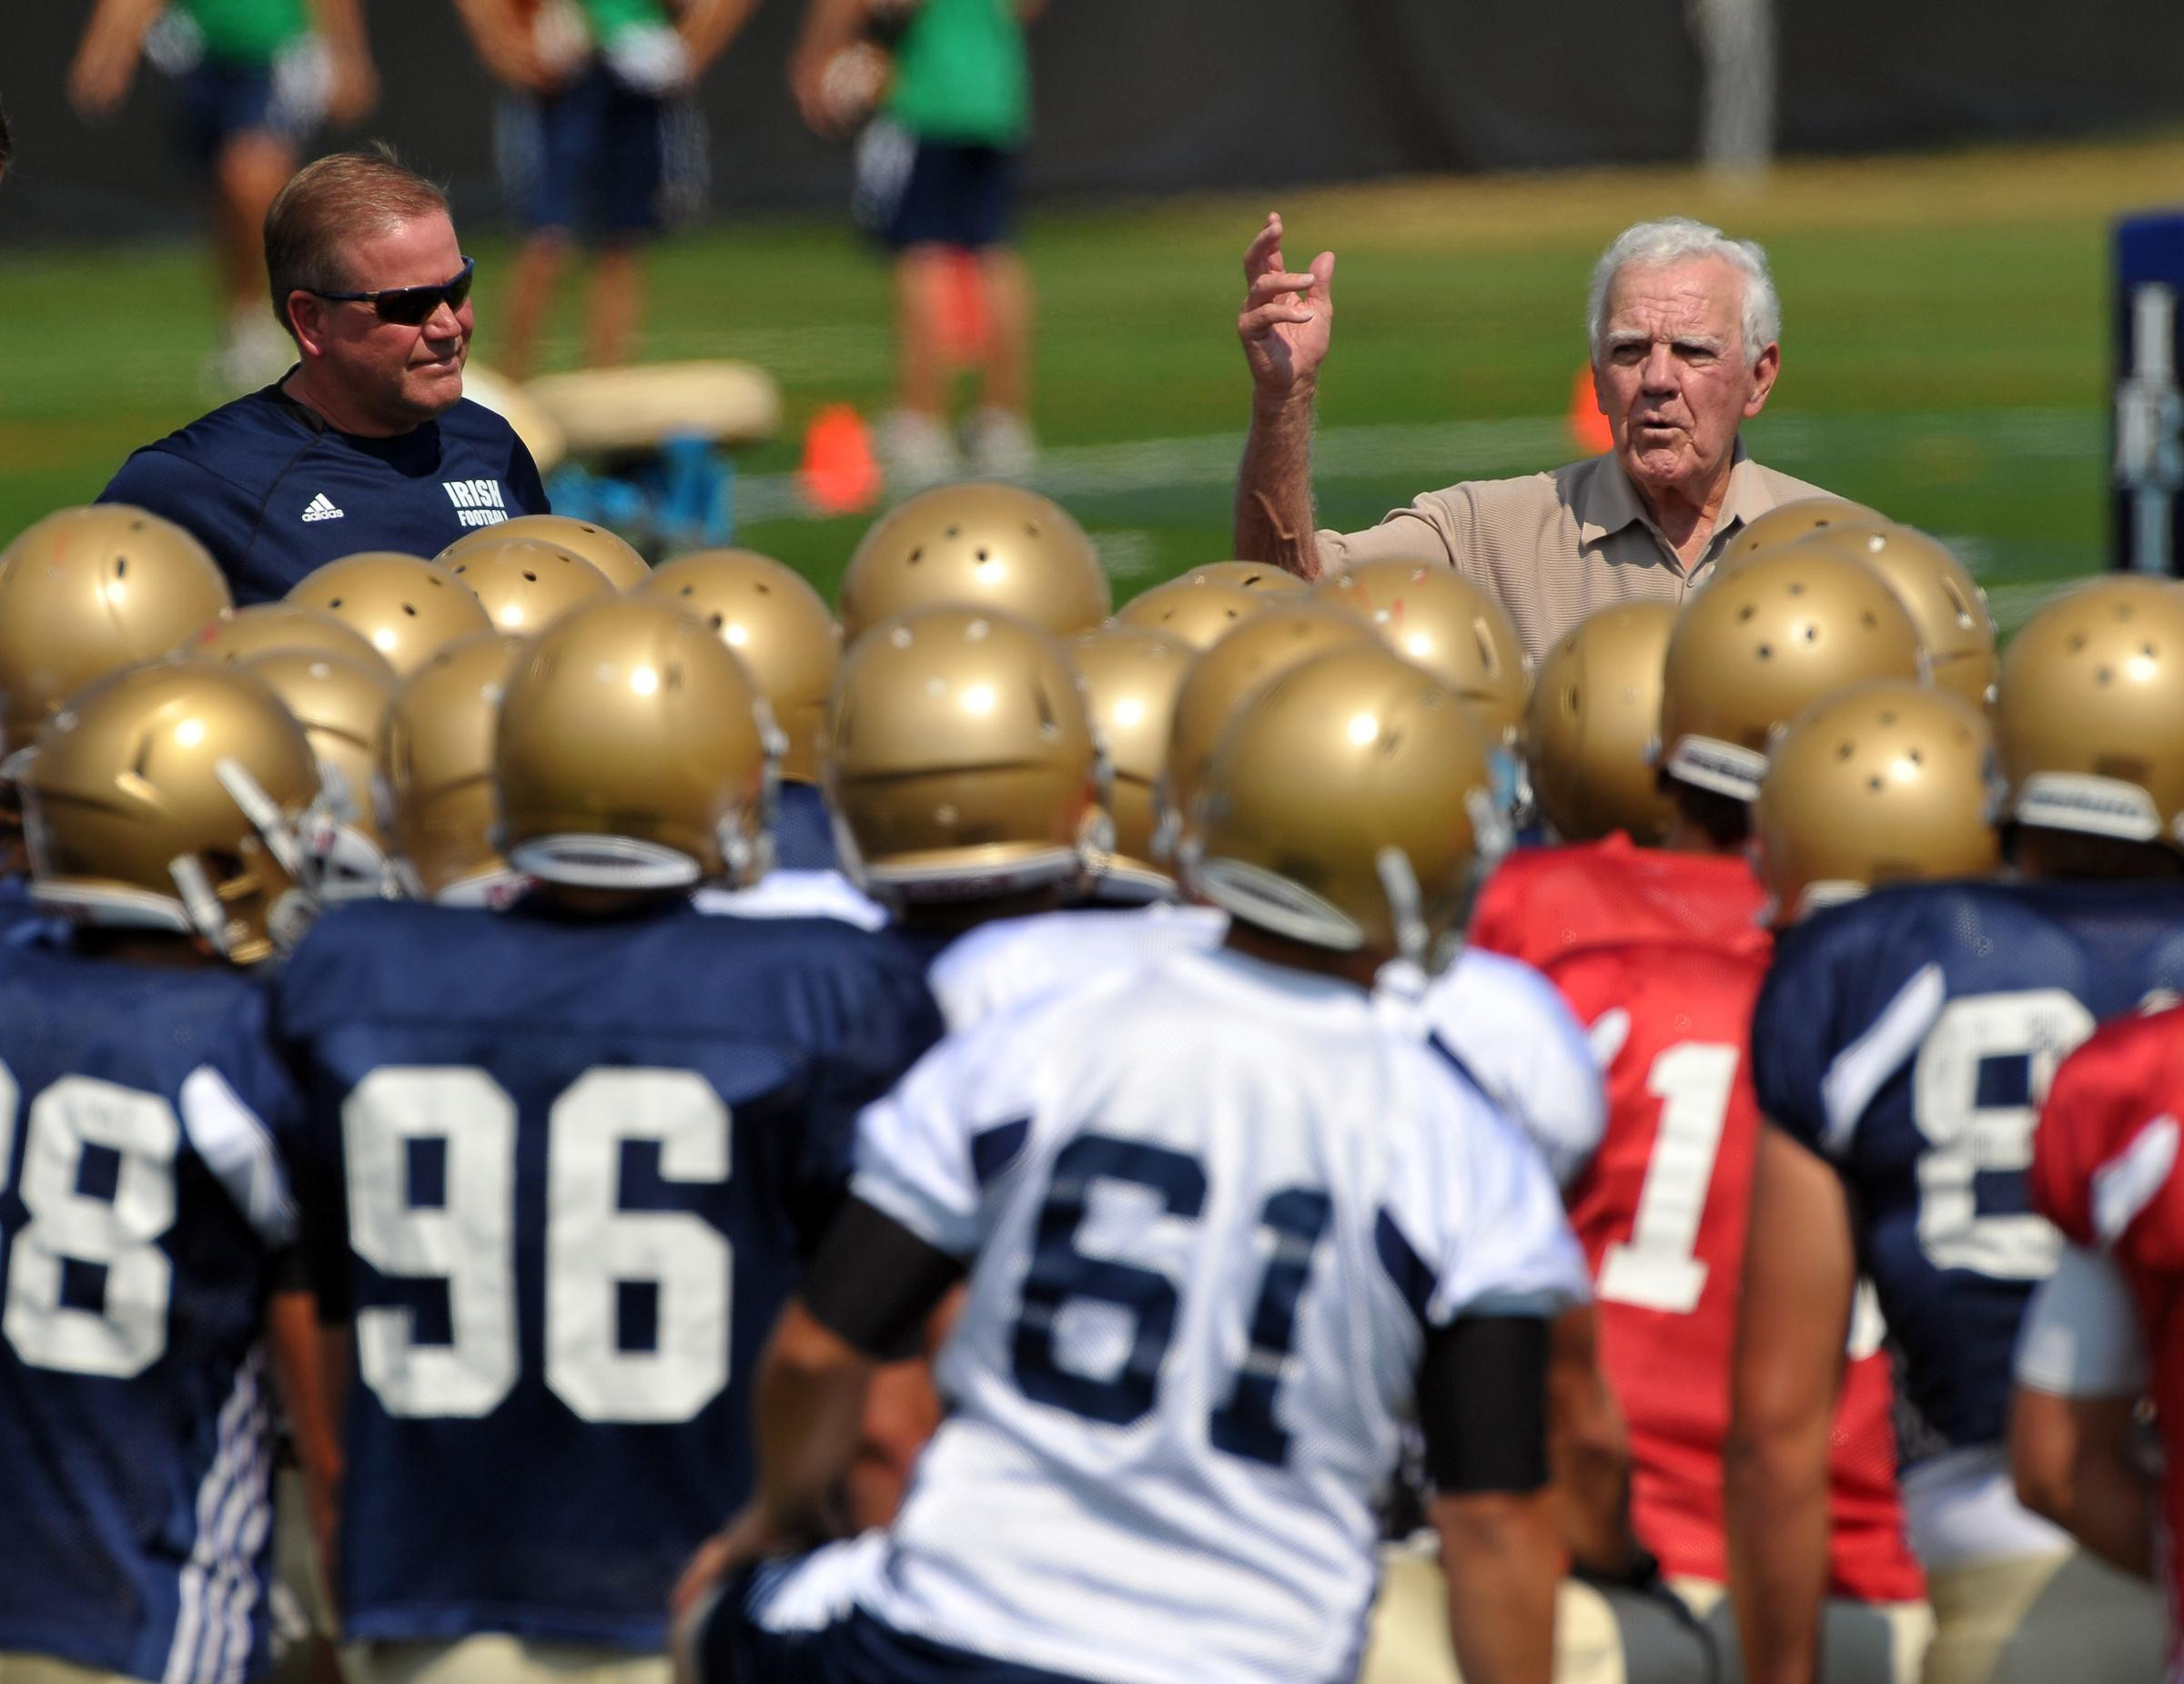 Notre Dame head football coach Brian Kelly and former head football coach Ara Parseghian at Practice at the LaBar Practice Complex August 19, 2010 / Photo by Matt Cashore